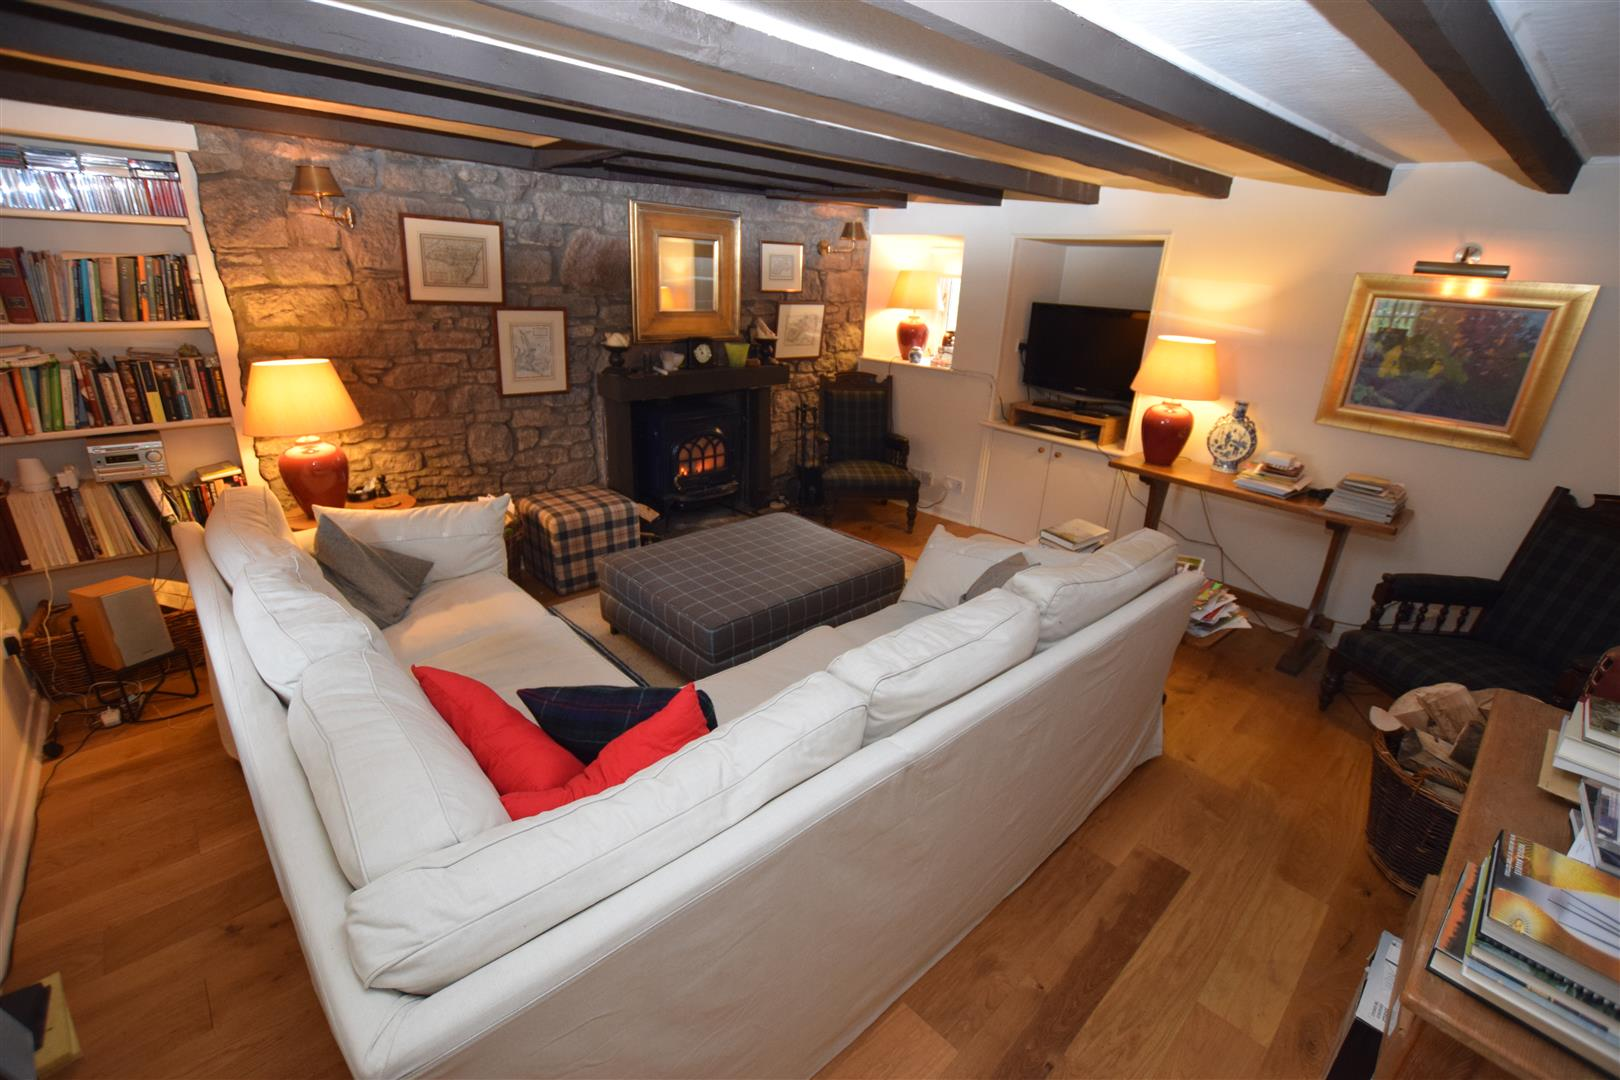 Briar Cottage, 2 West Green, The Green, Spittalfield, Perthshire, PH1 4JT, UK